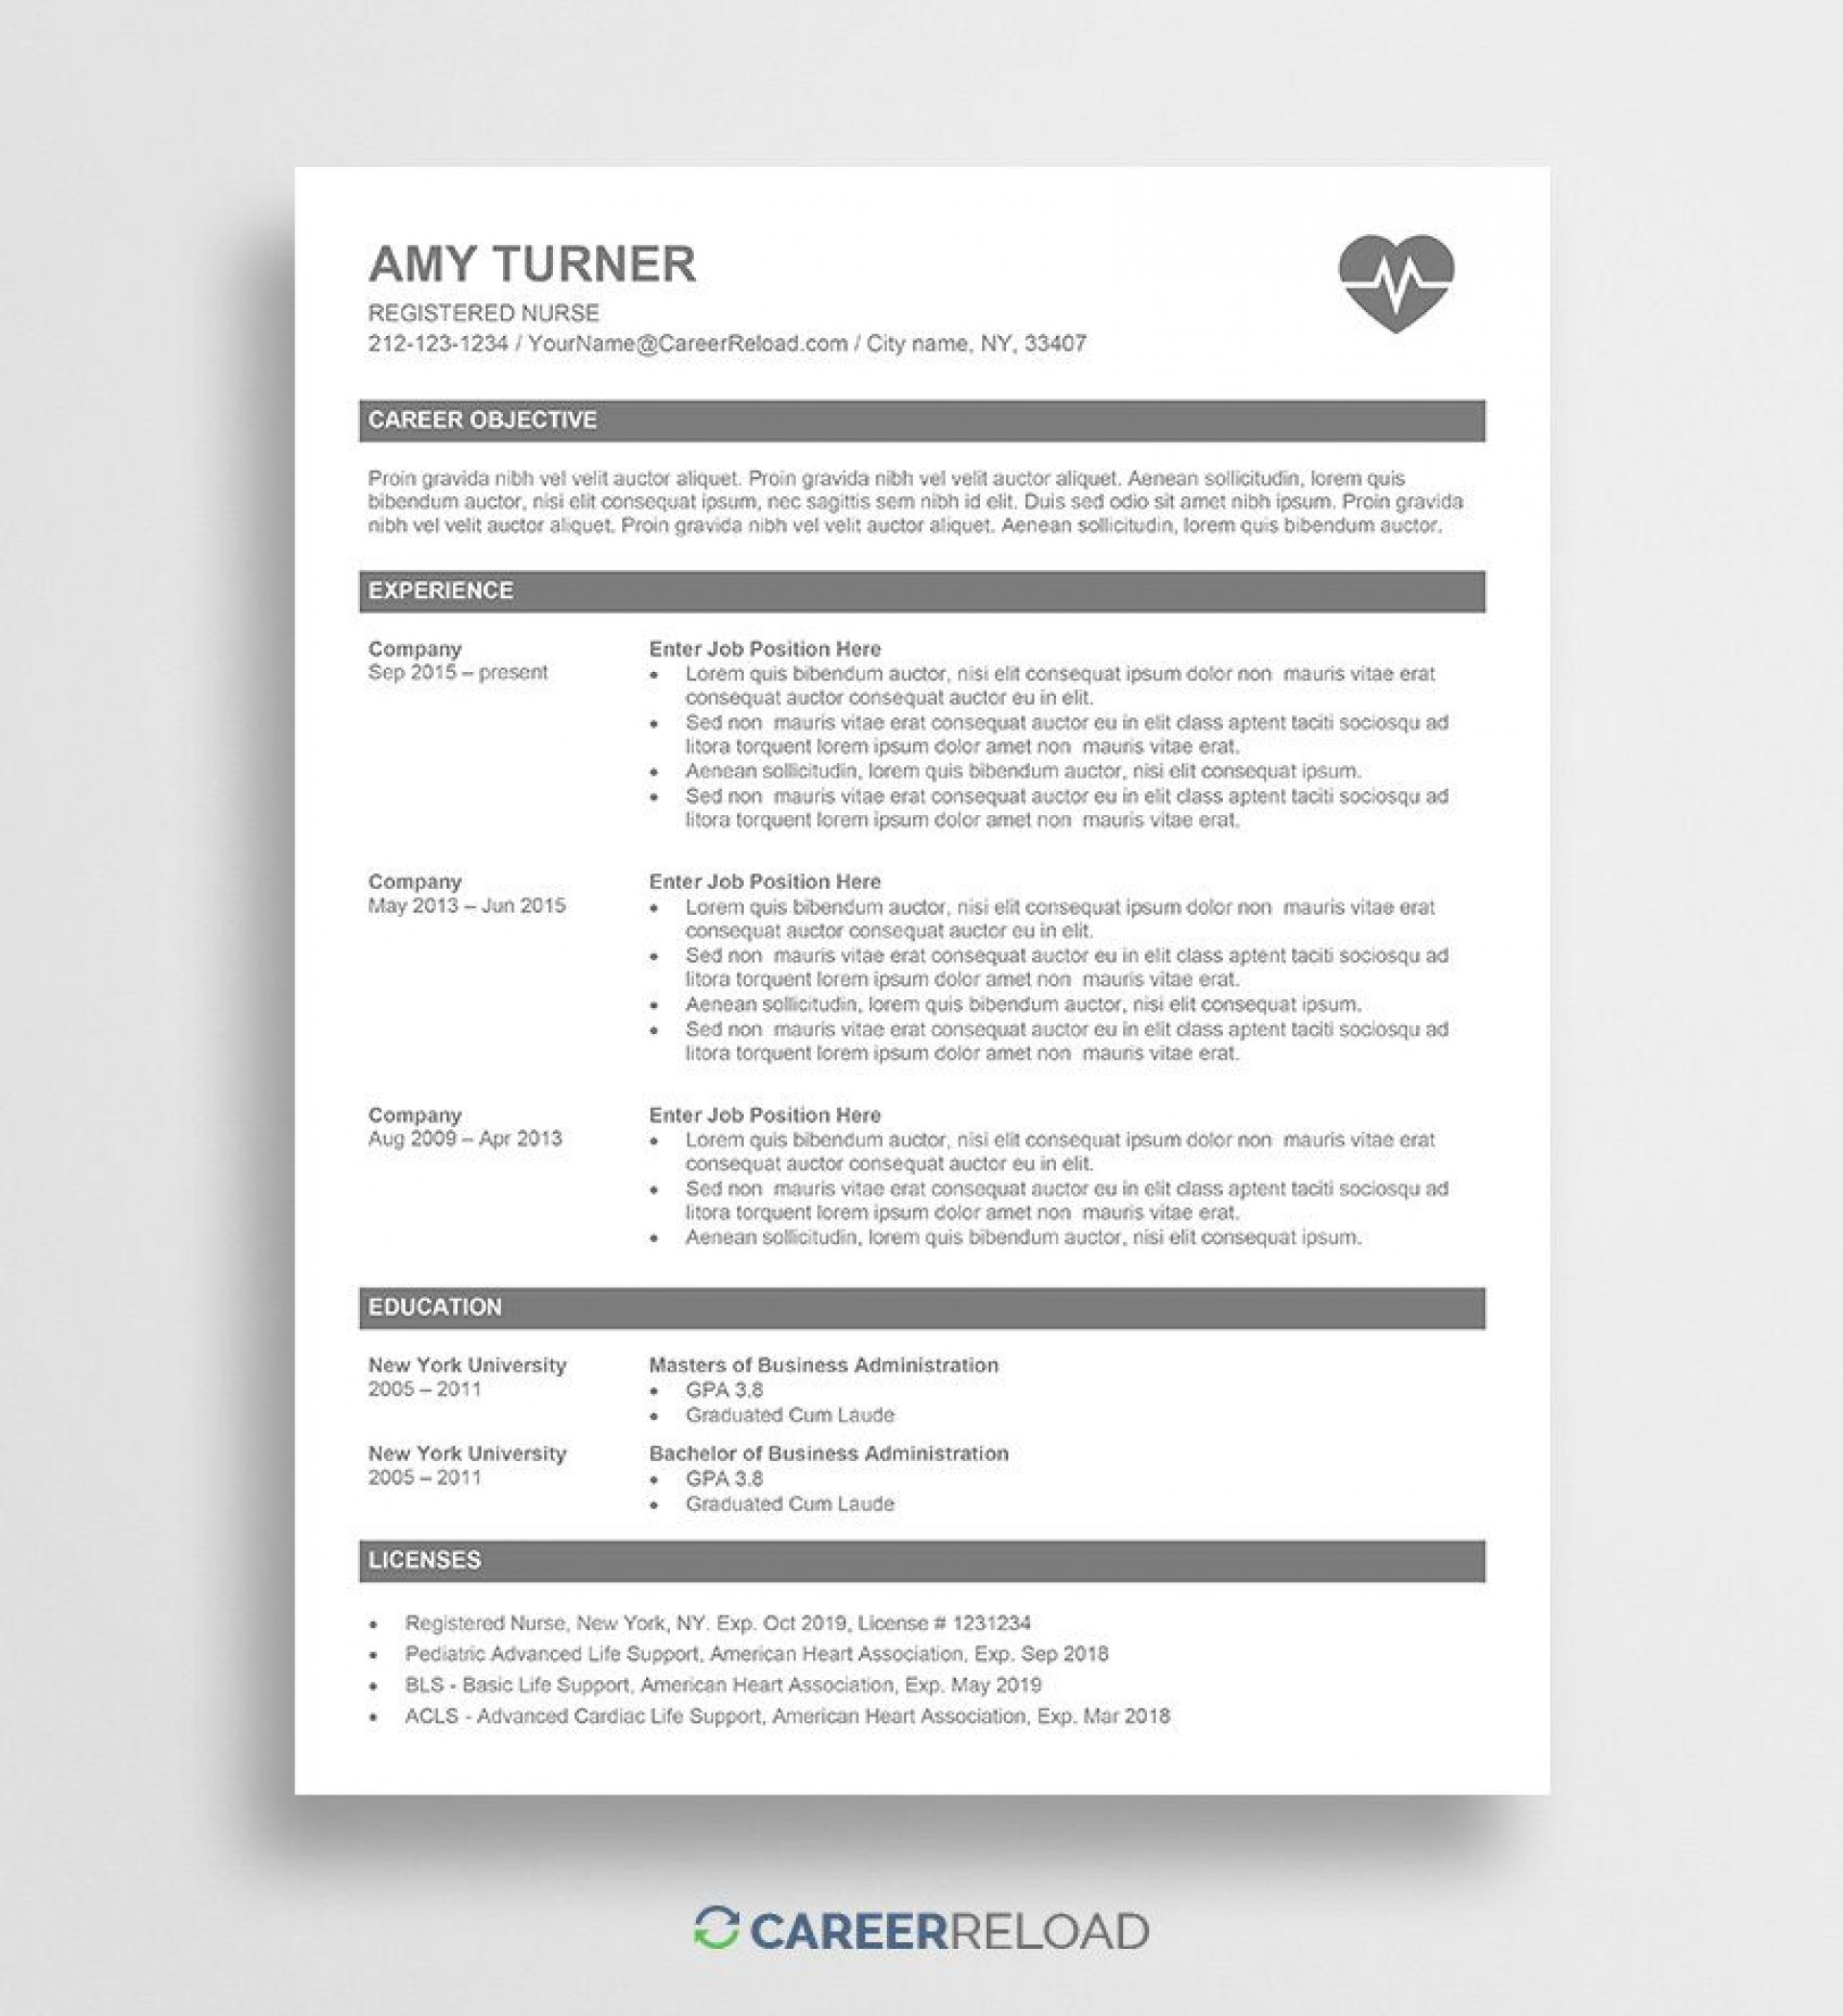 002 Remarkable Nurse Resume Template Free Highest Quality  Graduate Rn1920